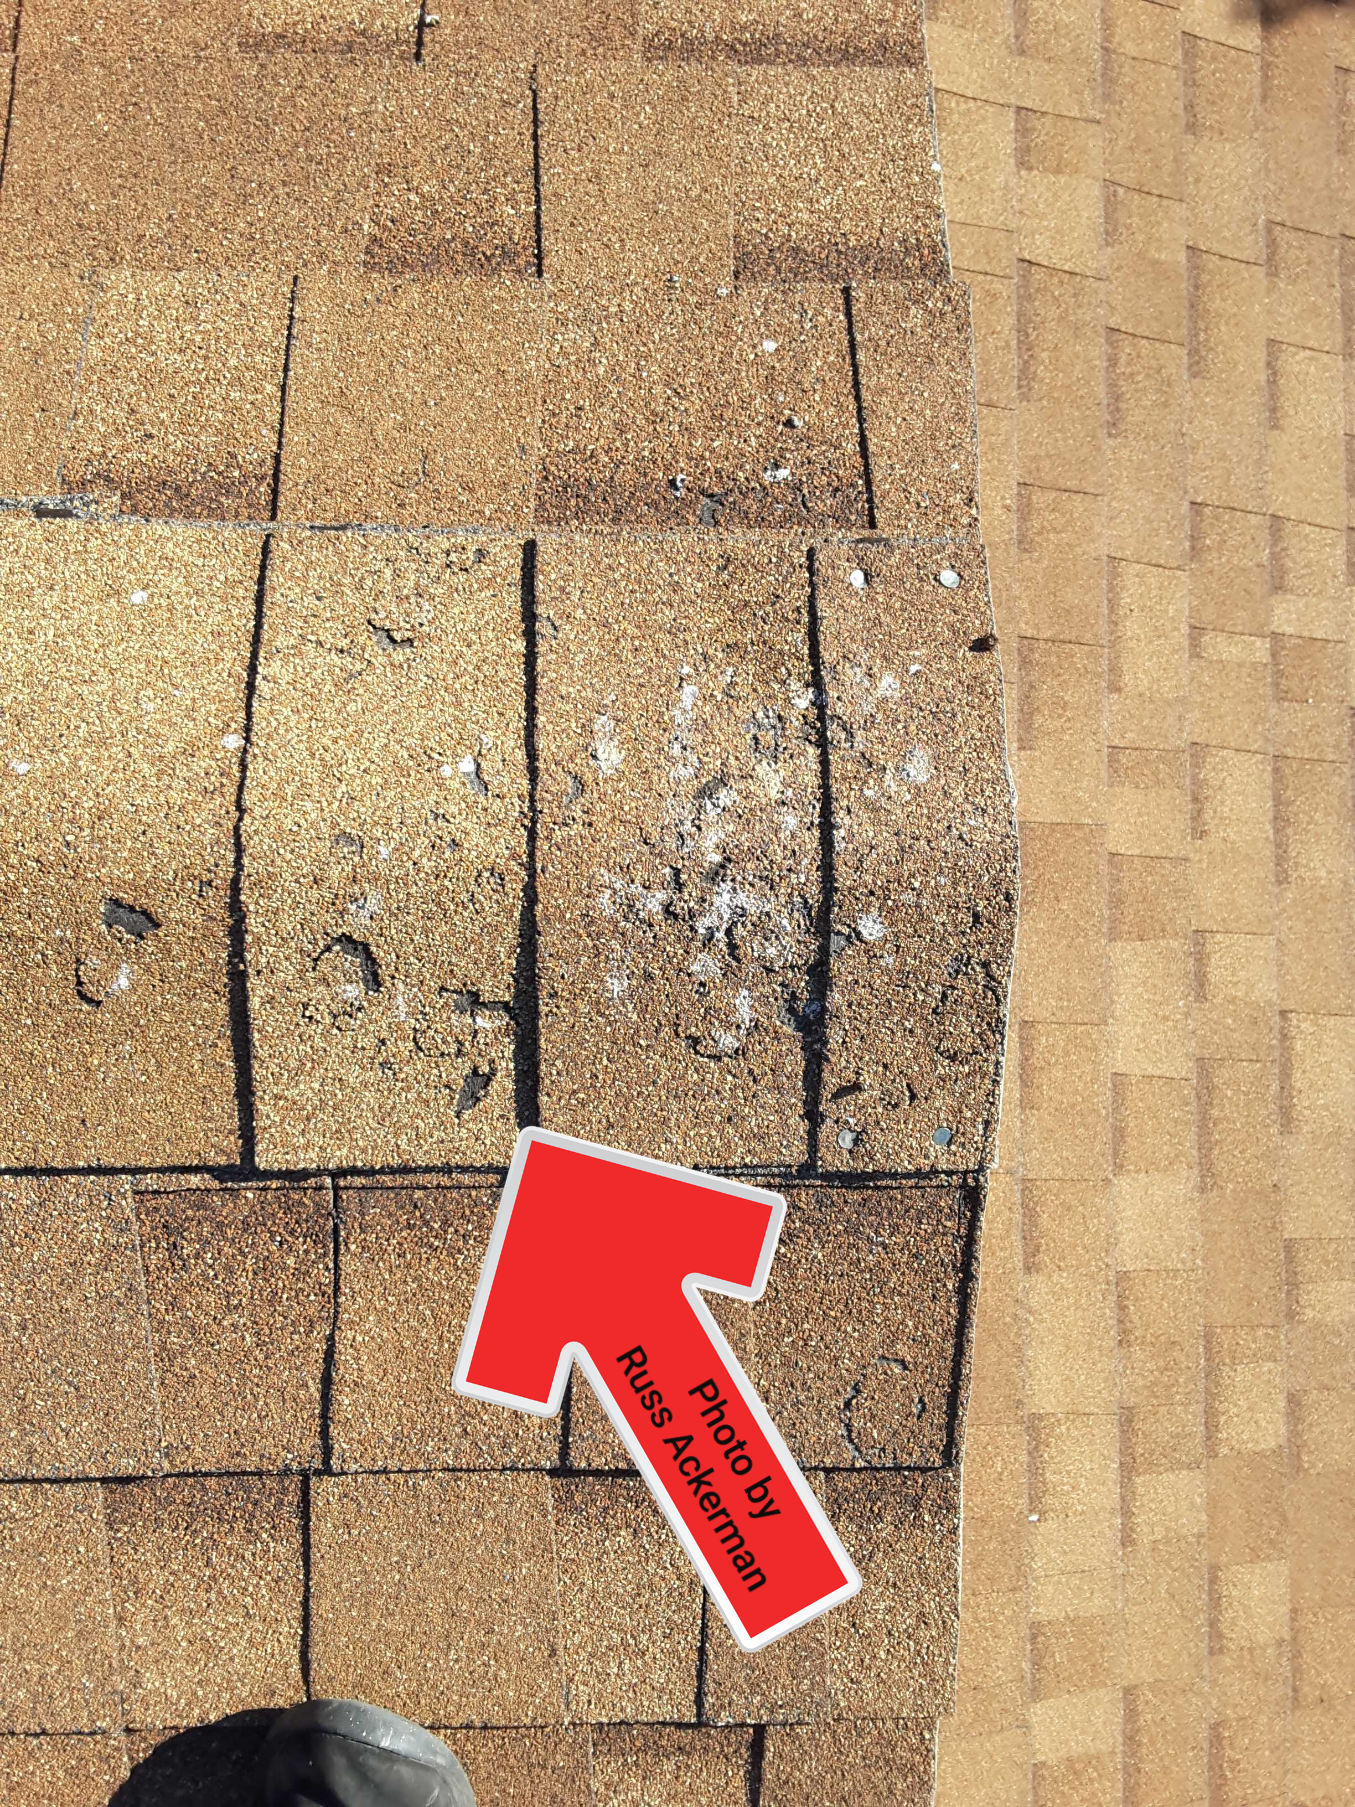 Granule loss at asphalt ridge shingles are from bird droppings which are highly acidic and will slowly eat away the shingles.